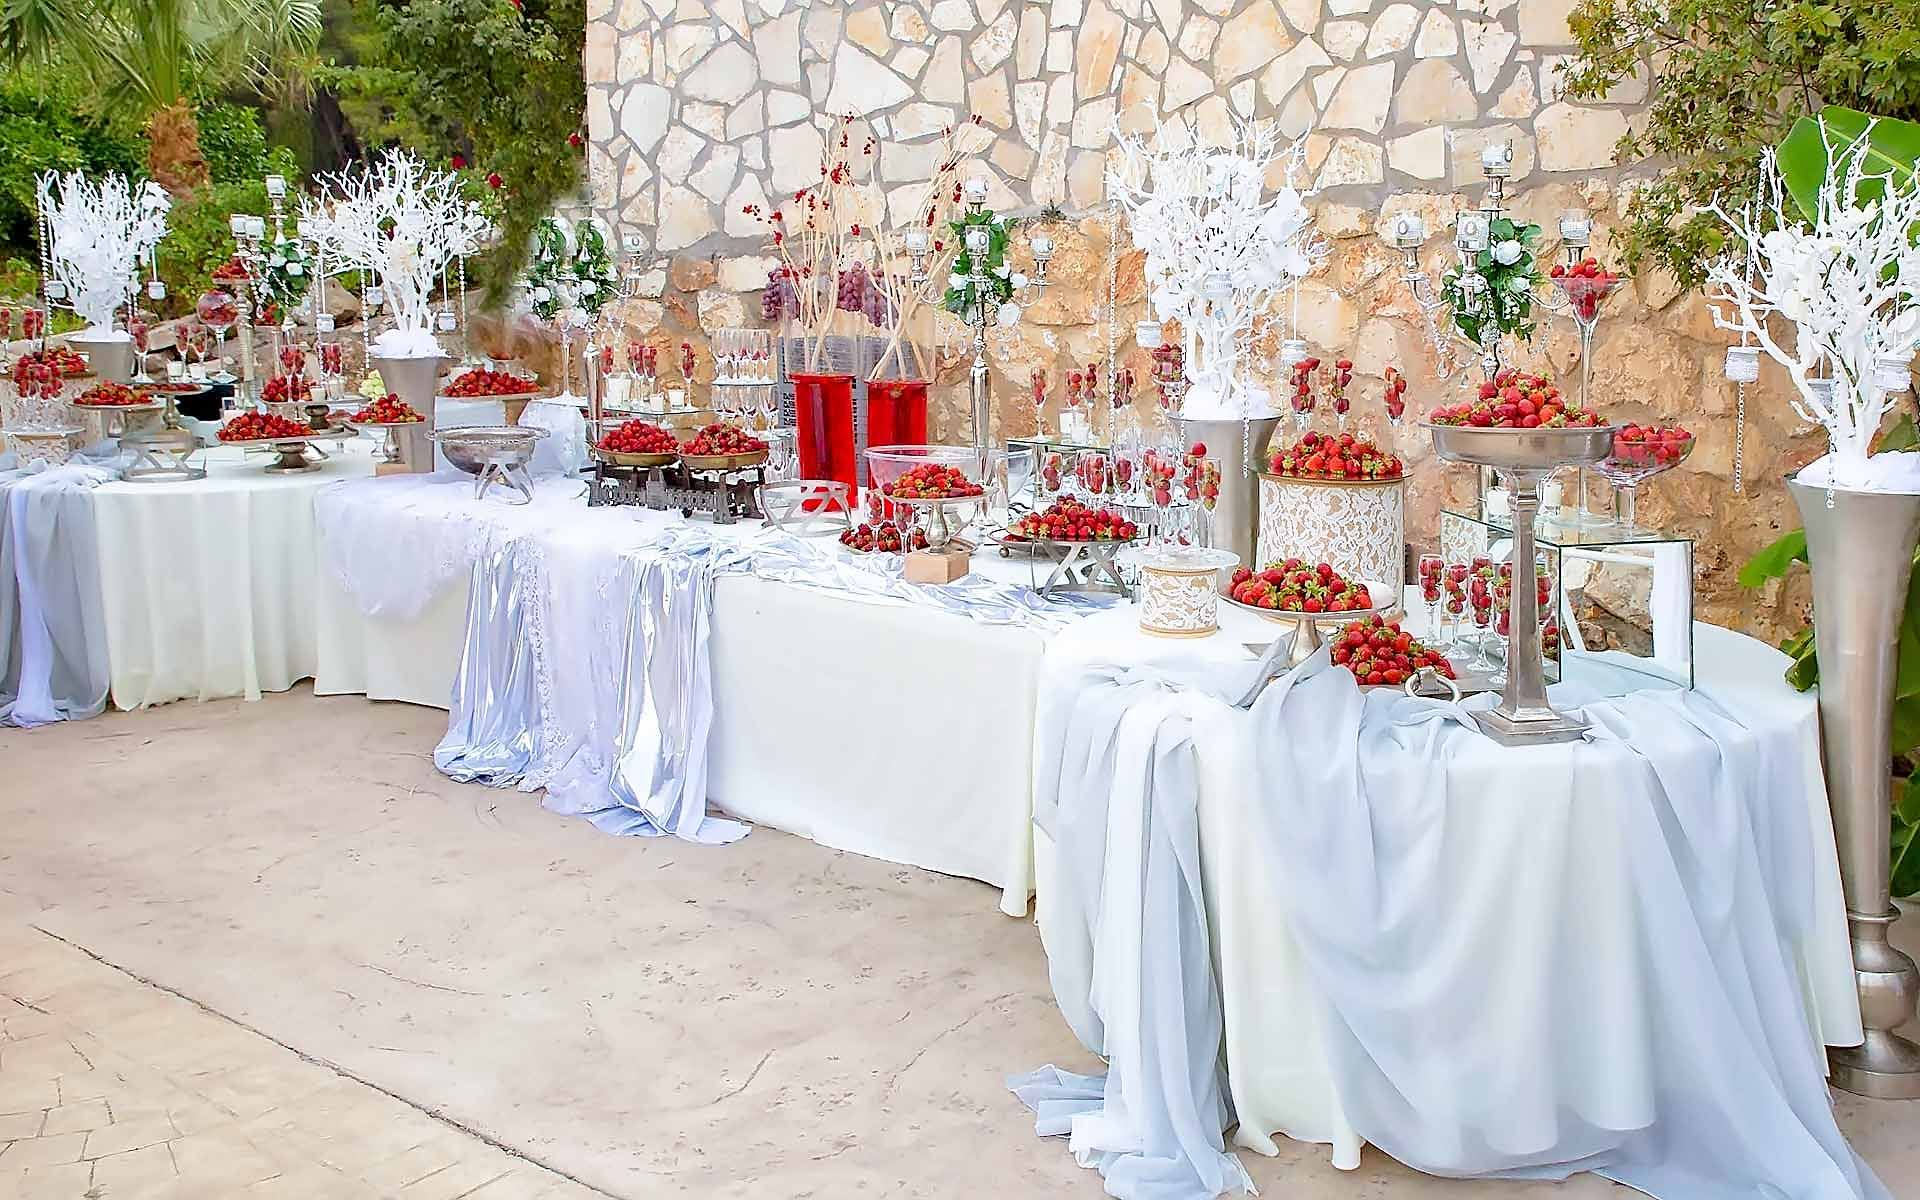 Impressive-Buffet-With-Strawberries-Champagnes-by-Diamond-Events